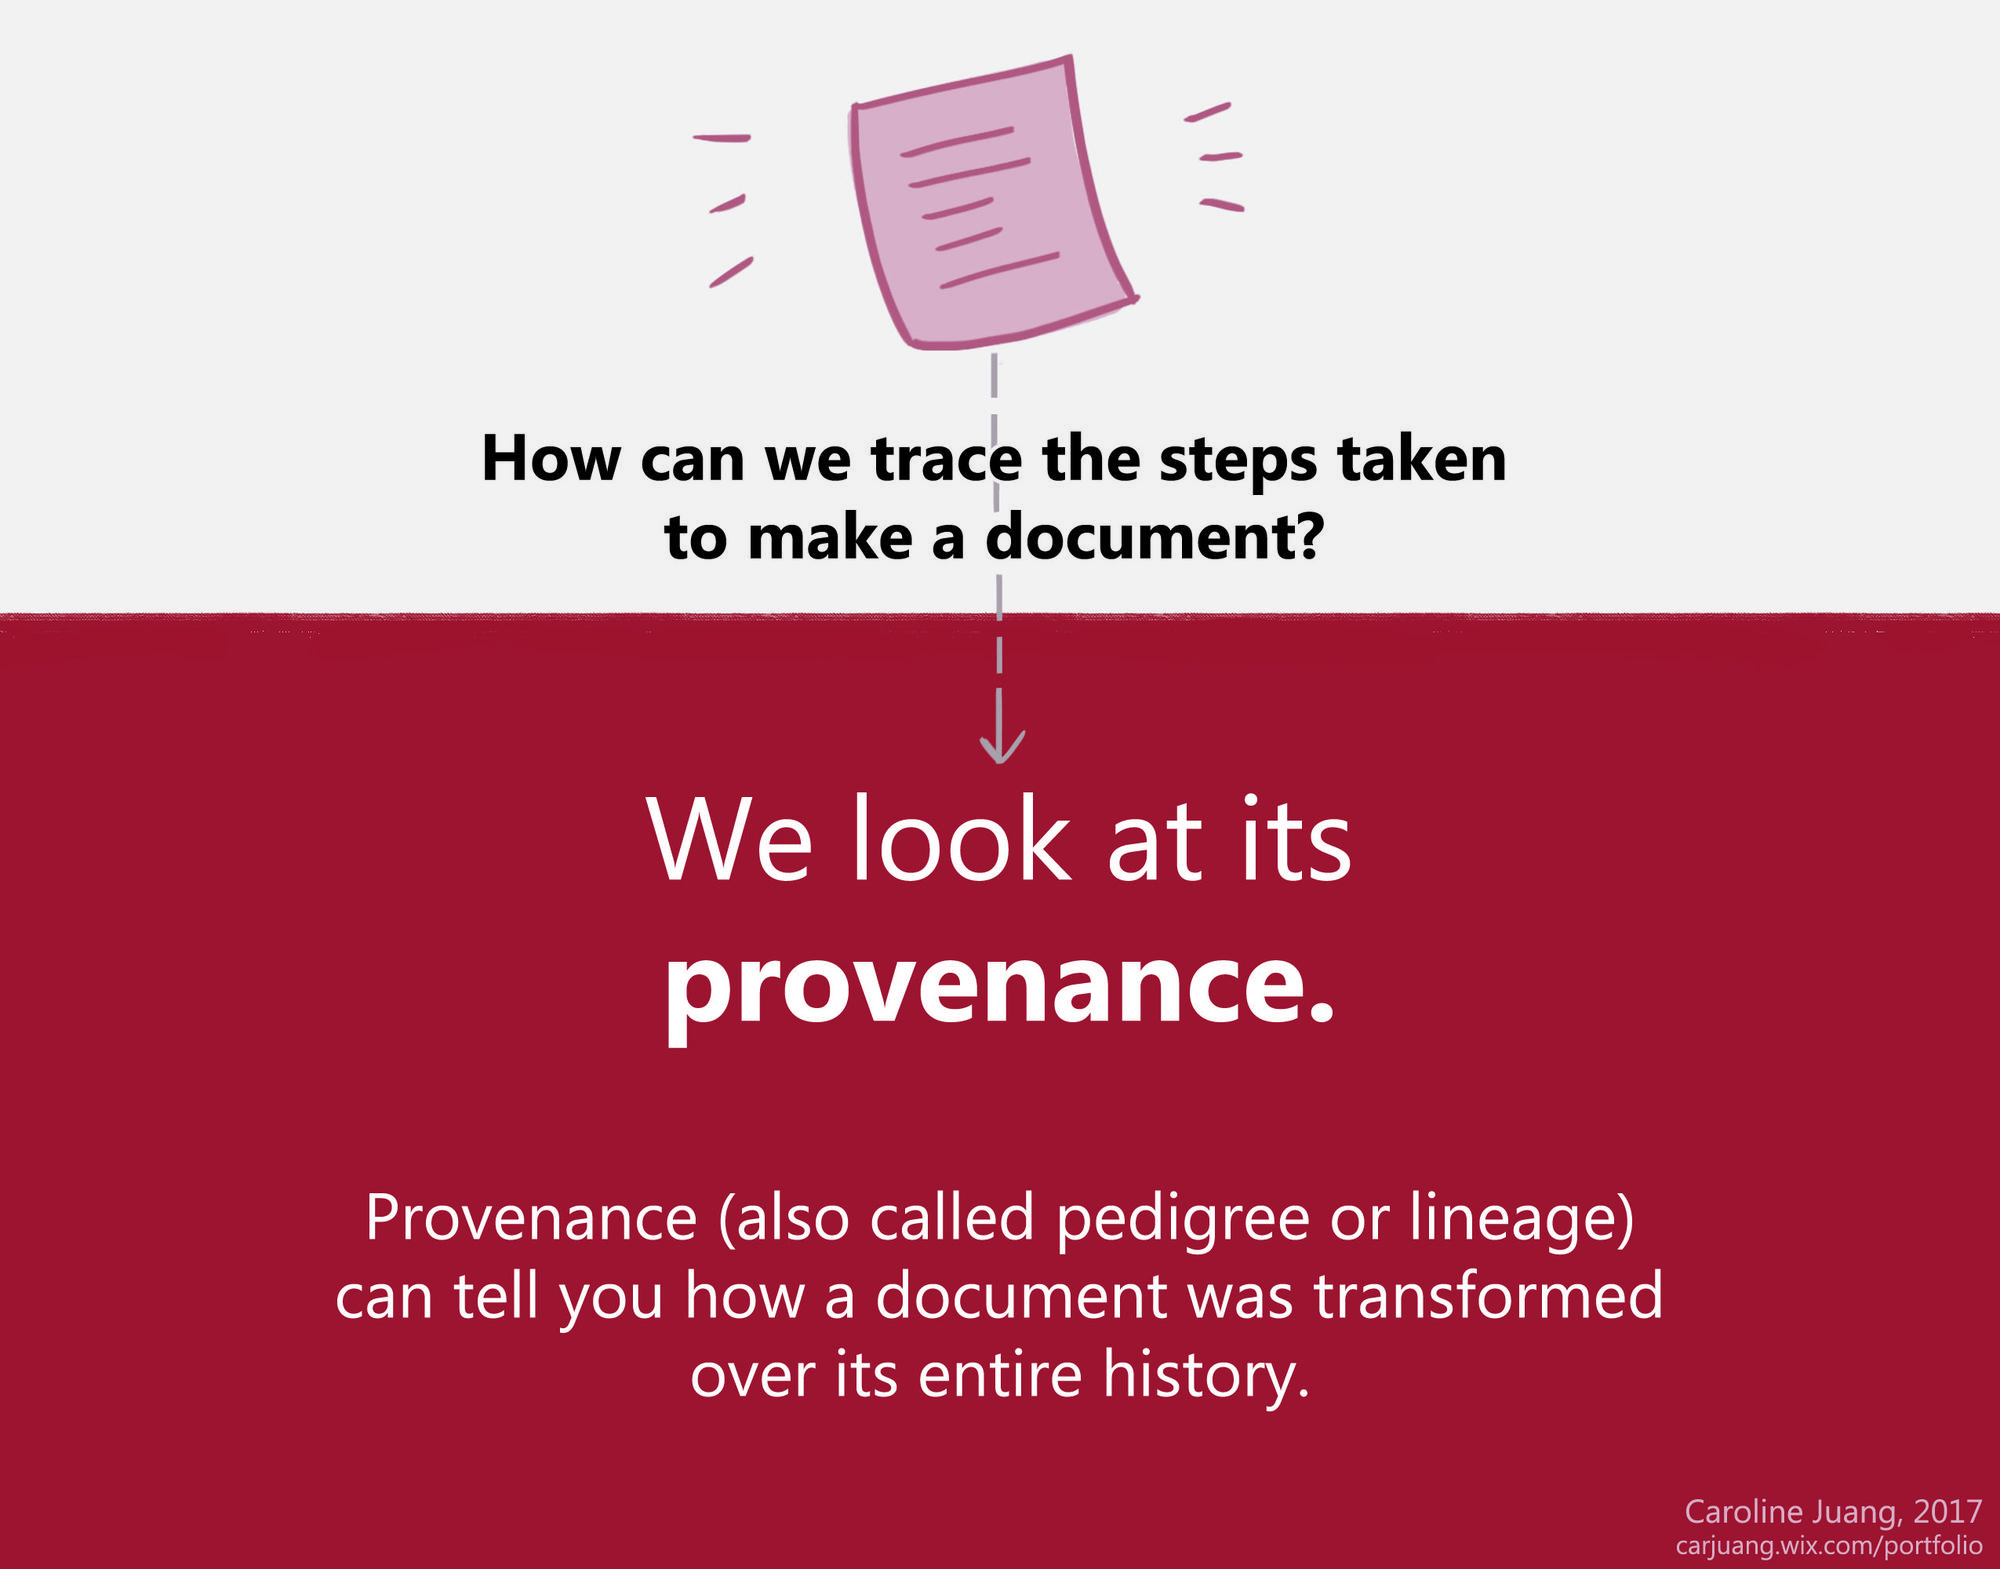 What is provenance?